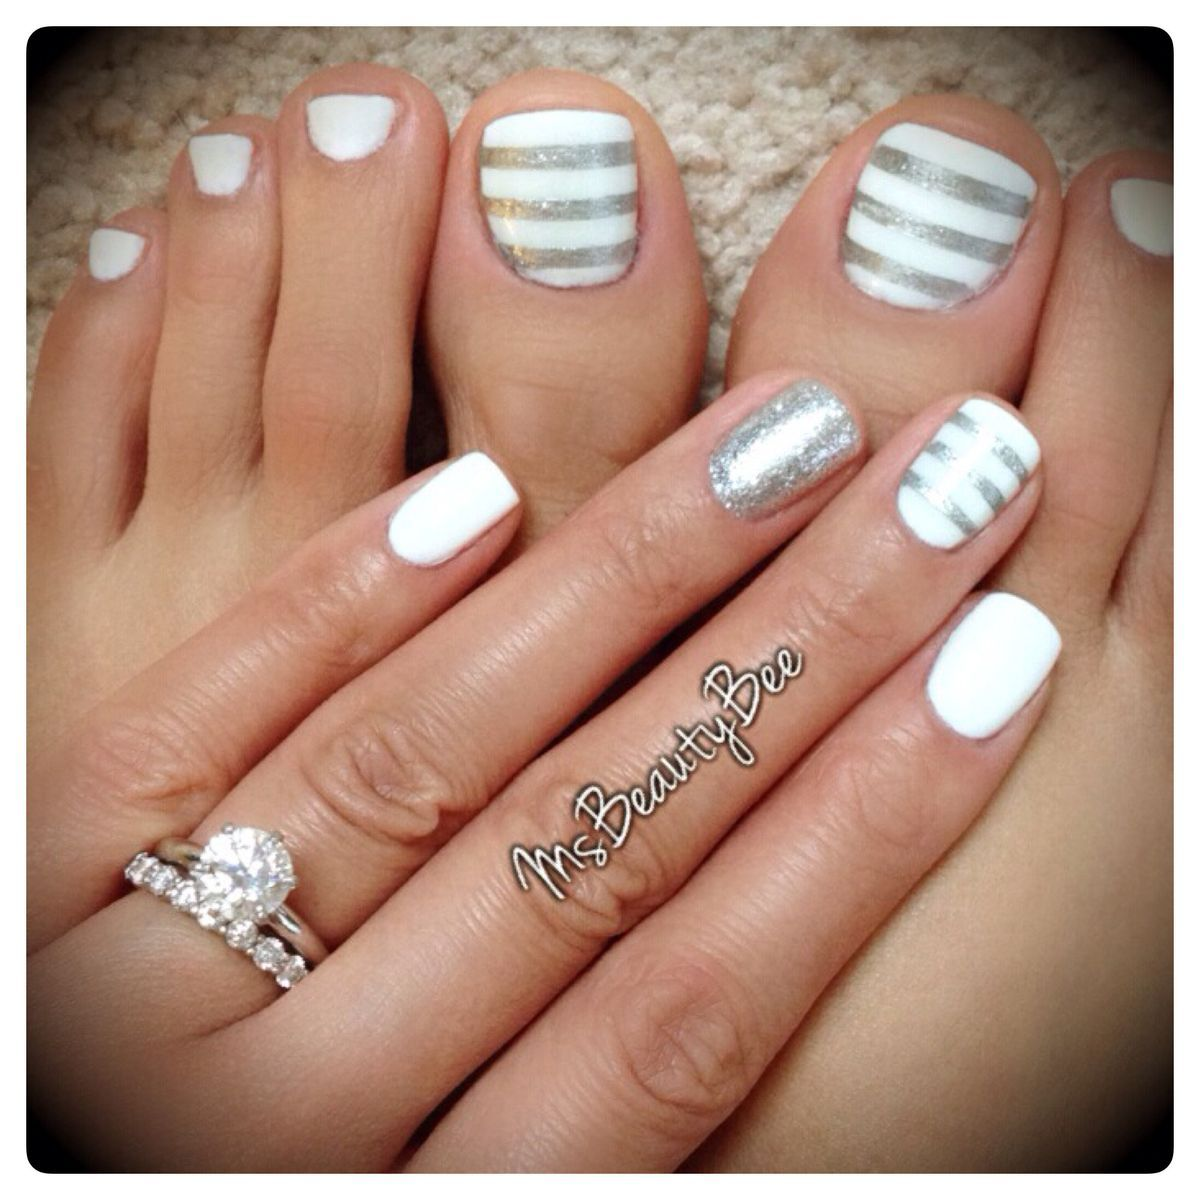 86f9bad18661a8104db3fb14a6ab67d6 Jpg 1 200 1 200 Pixels Toe Nails Striped Nails Manicure And Pedicure